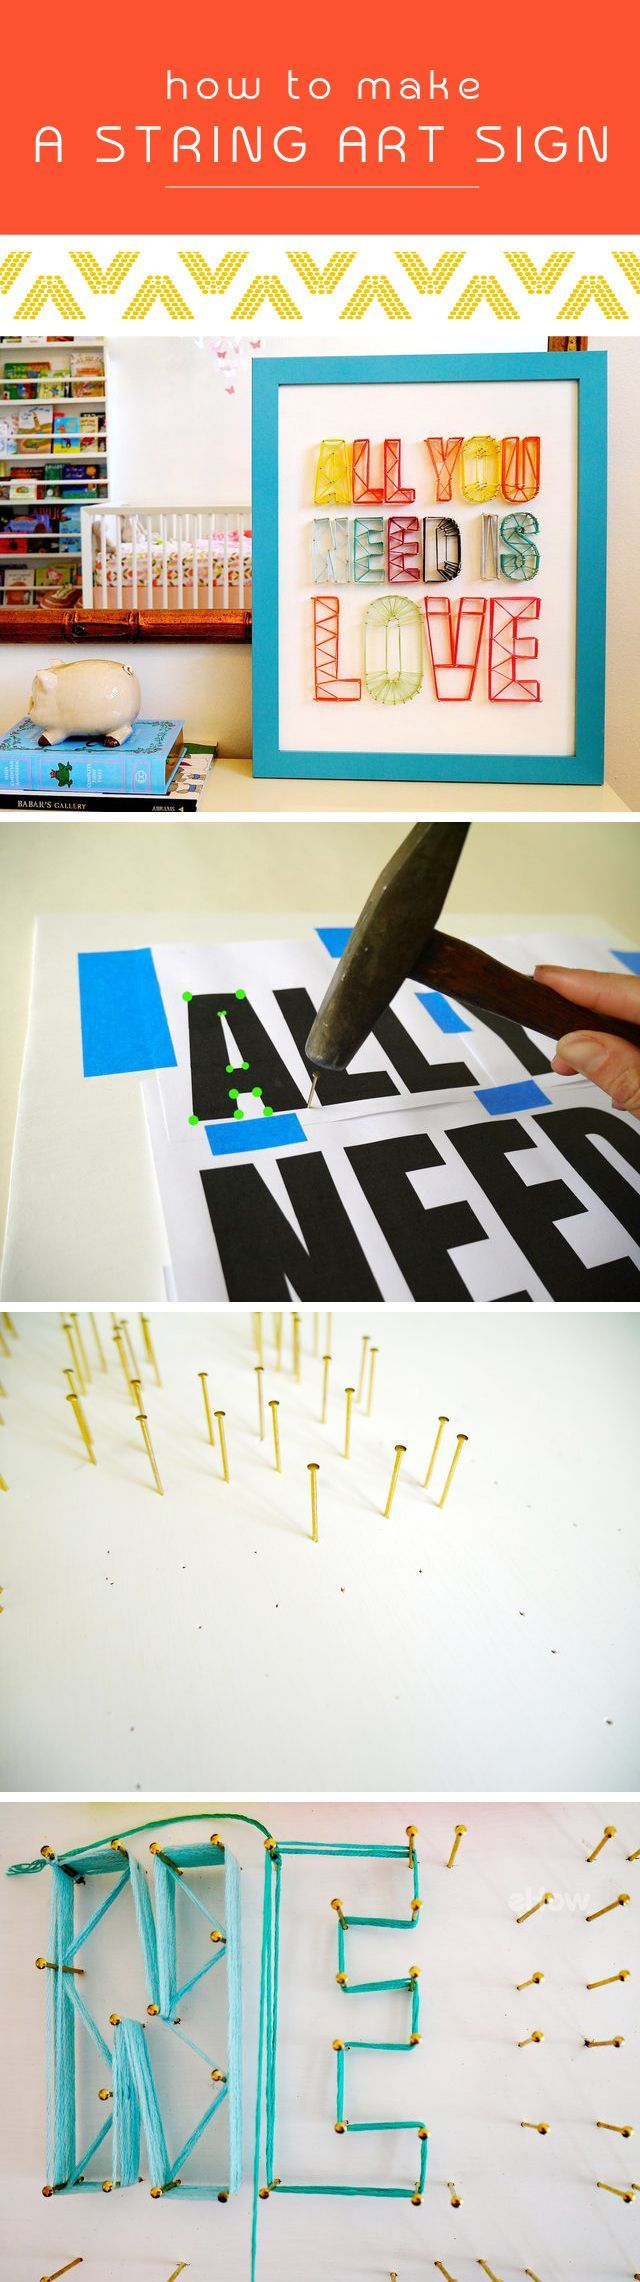 String art signs are perfect for just about every room in the house, especially nurseries and kids rooms. The colorful and playful design adds a lot of character, no matter what you decide to spell out. Check out the how-to here: http://www.ehow.com/info_12340469_make-string-art-sign.html?utm_source=pinterest.com&utm_medium=referral&utm_content=inline&utm_campaign=fanpage